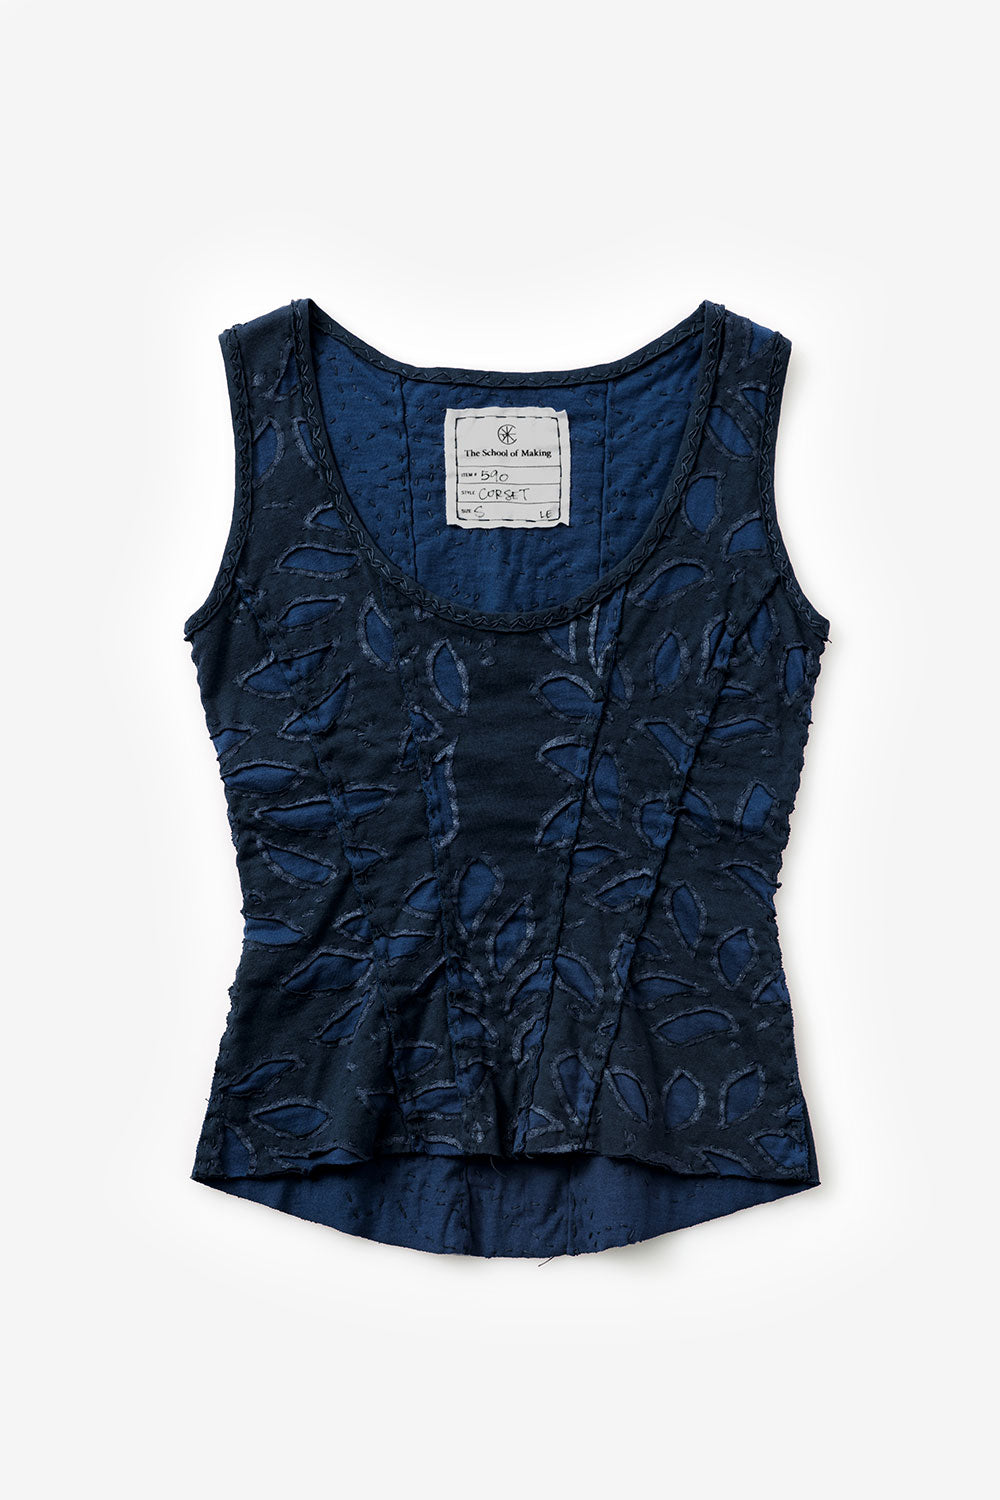 The School of Making Bloomers Stencil Floral Stencil on Hand-Sewn Top in Black and Navy